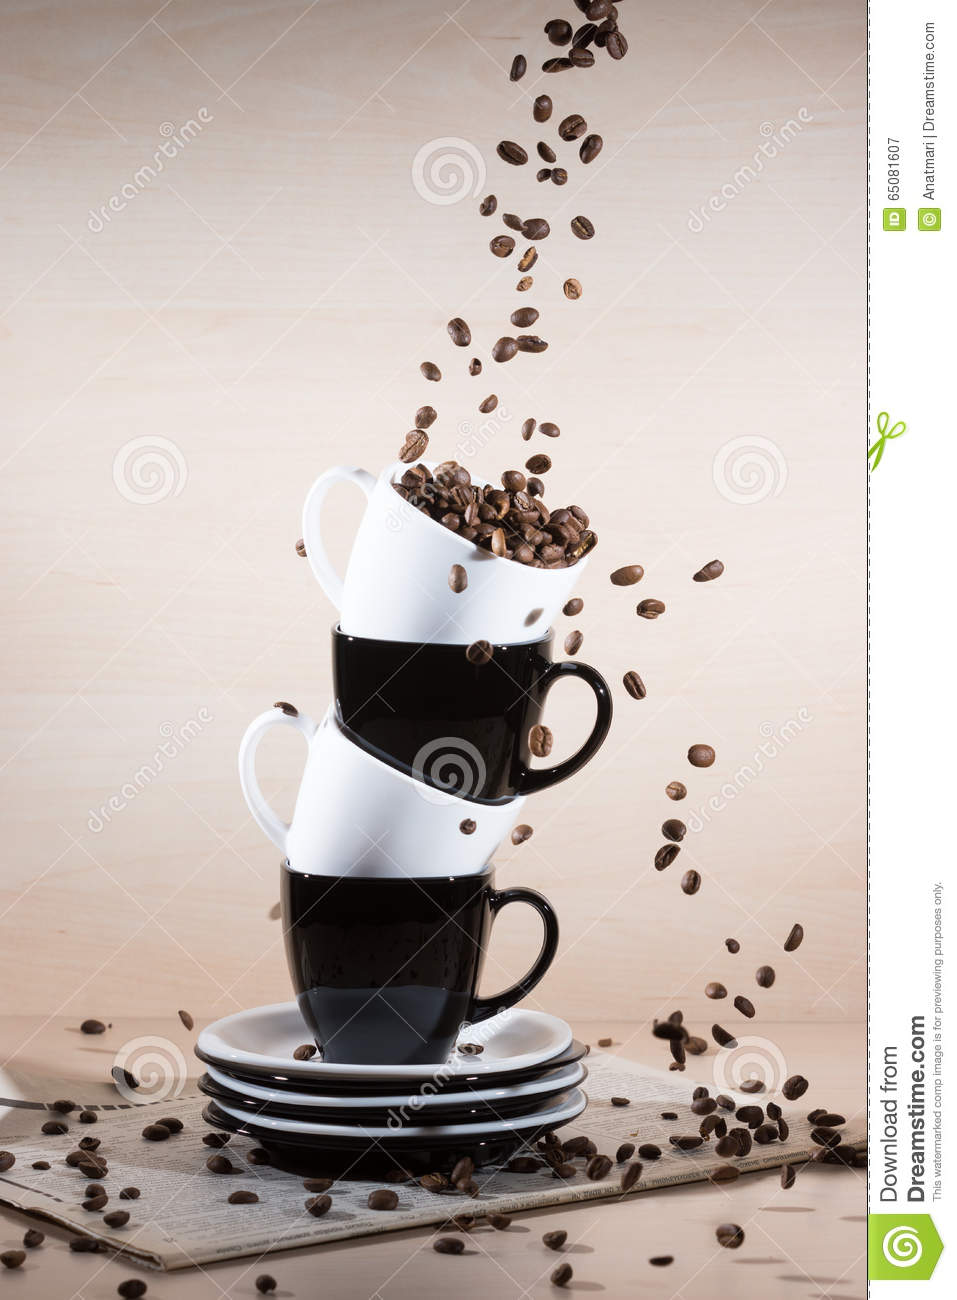 View of black and white cups on the stack of the plates with falling down brown roasted coffee beans on newspaper.